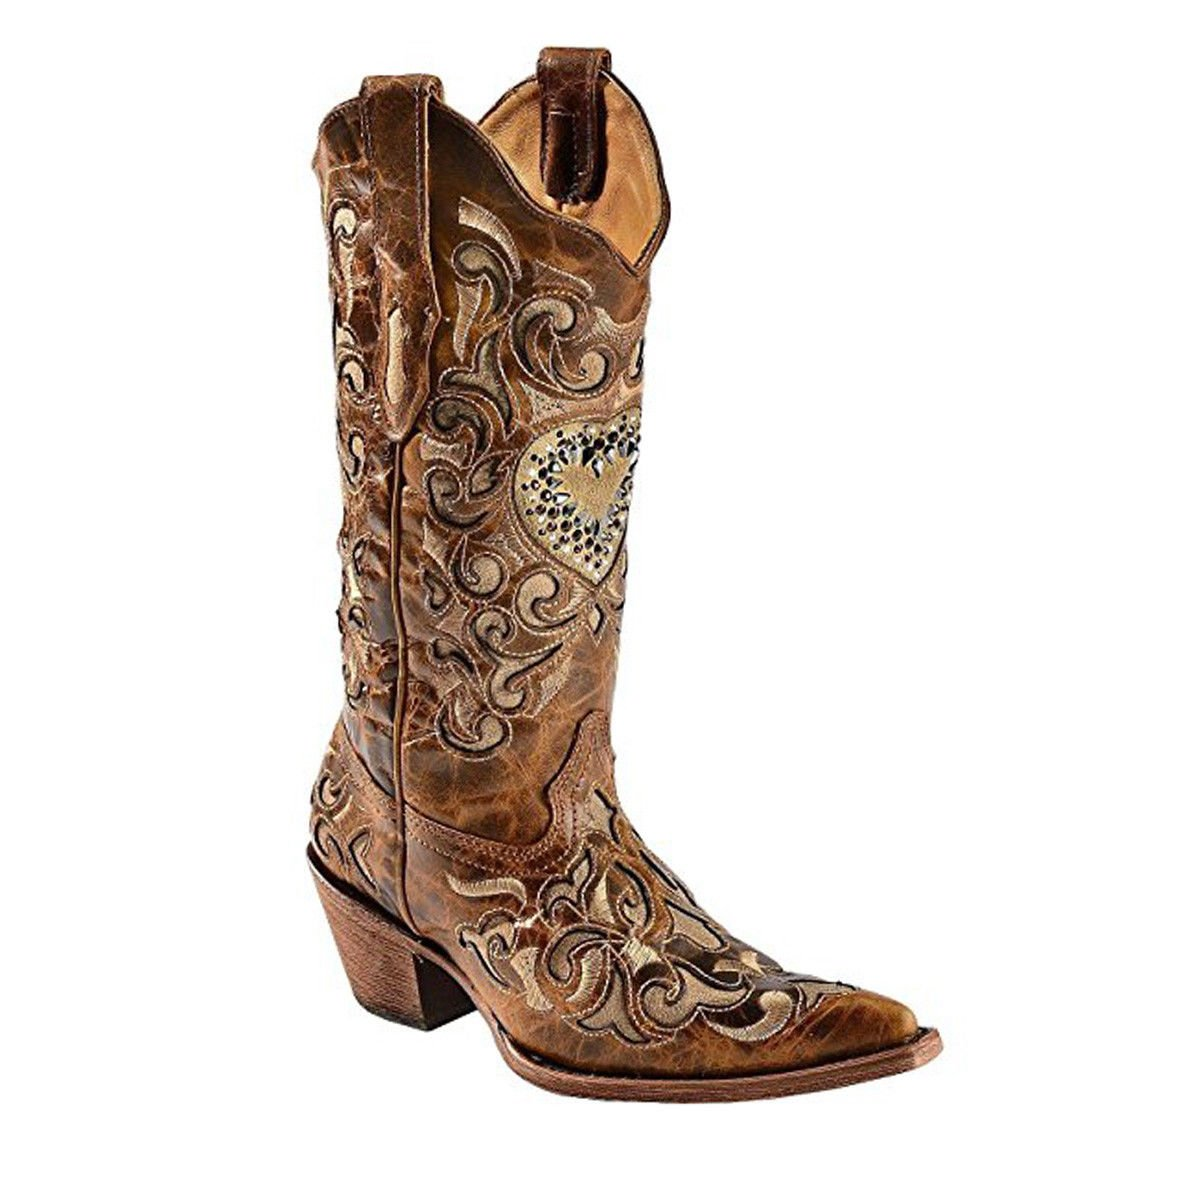 93706d4751f CORRAL Women's Sand Maipo Crystal Heart Pointed Toe Cowgirl Boots ...